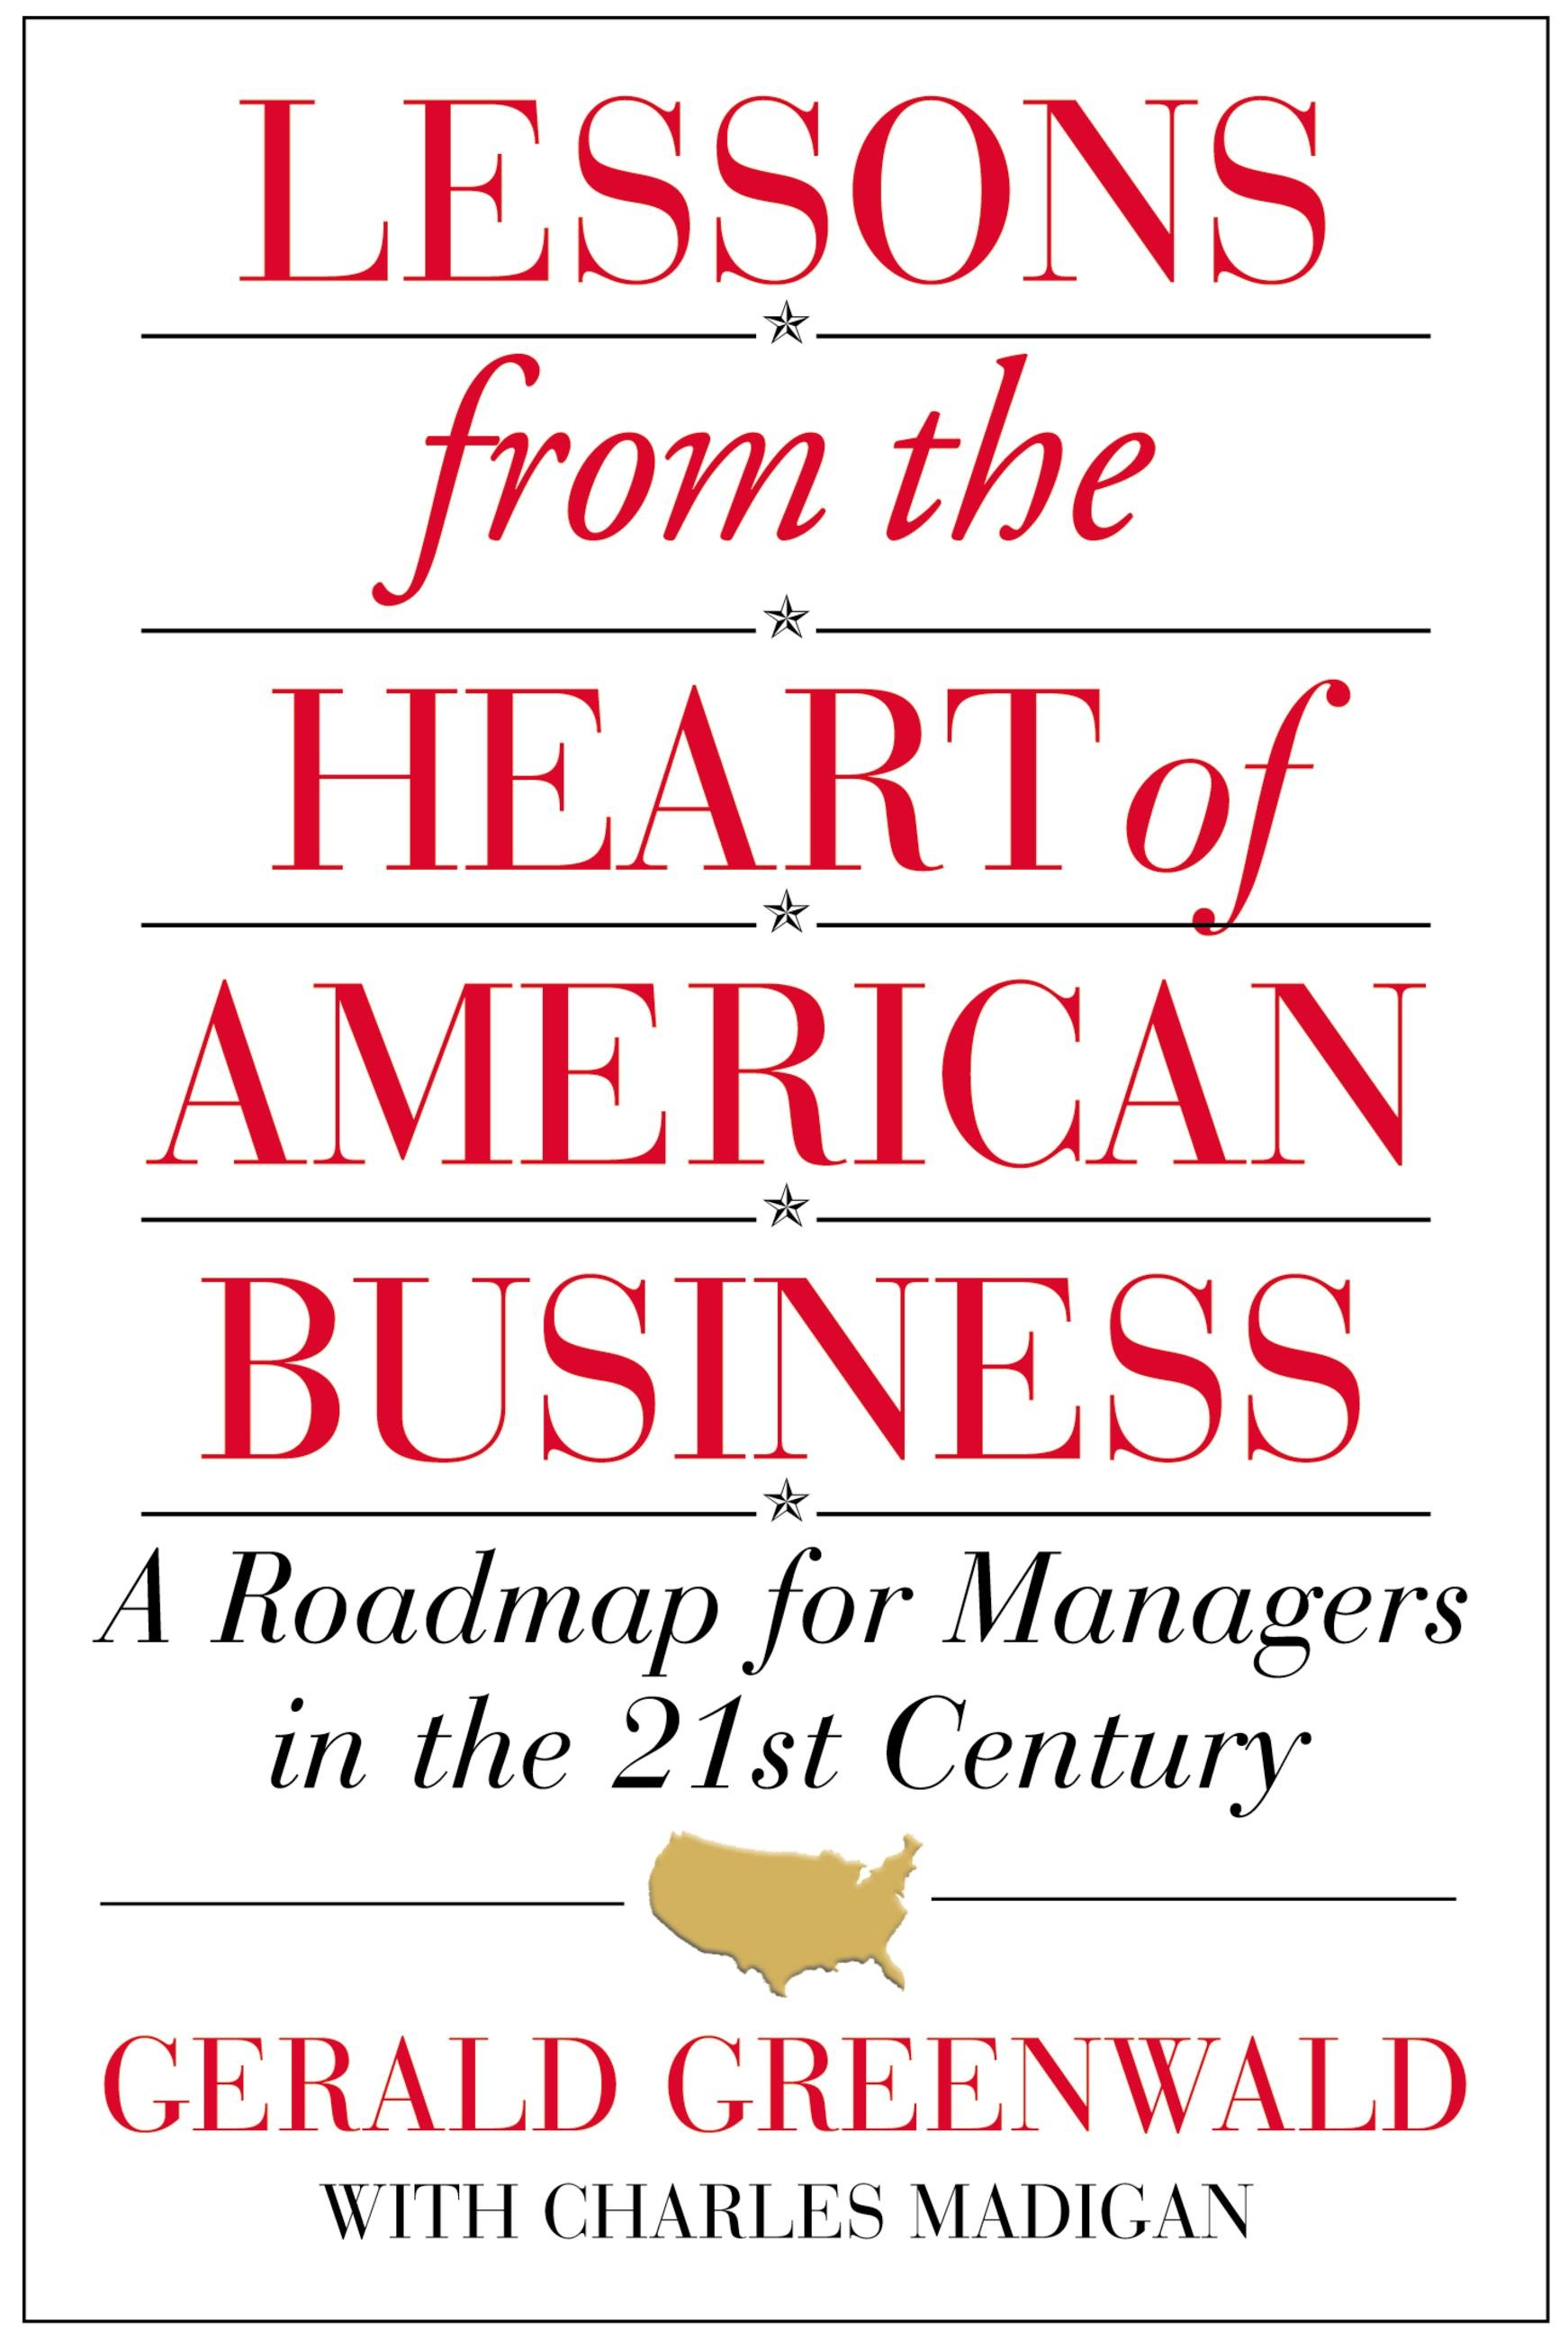 Lessons from the Heart of American Business